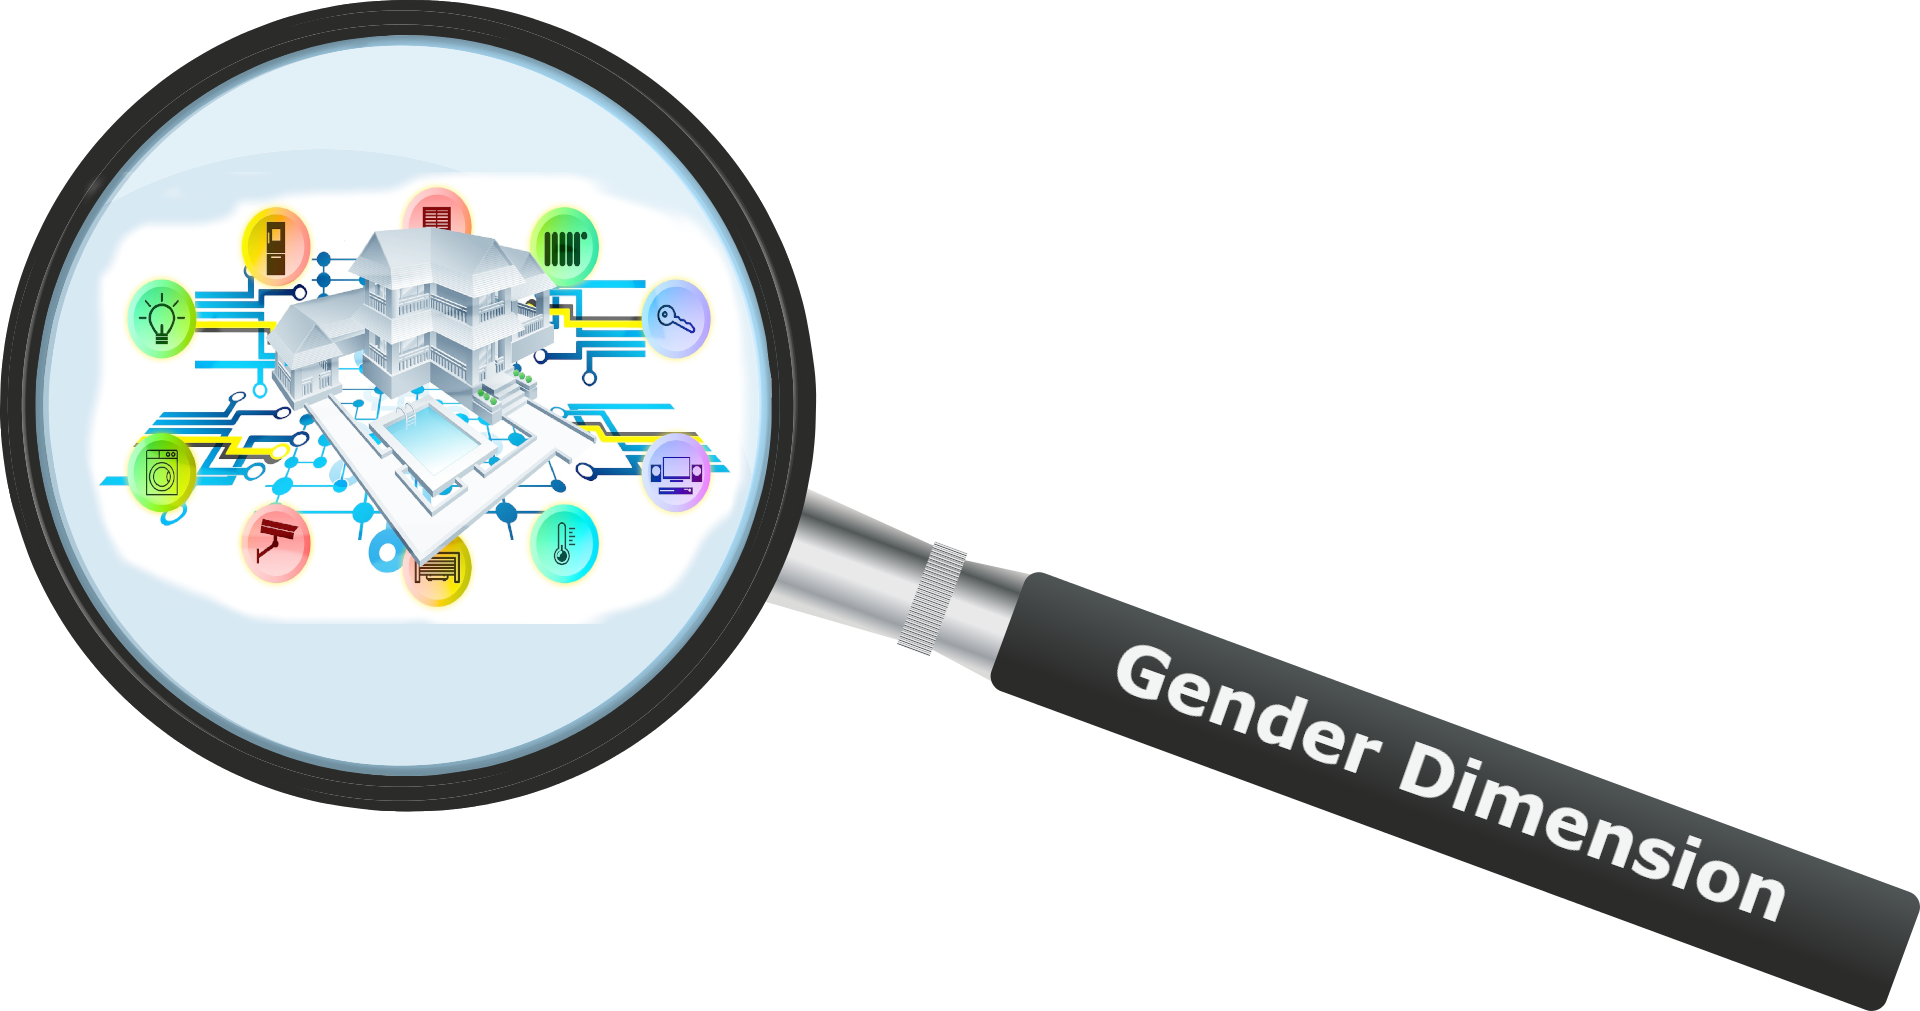 A lens labelled Gender Dimension looking at a smart home